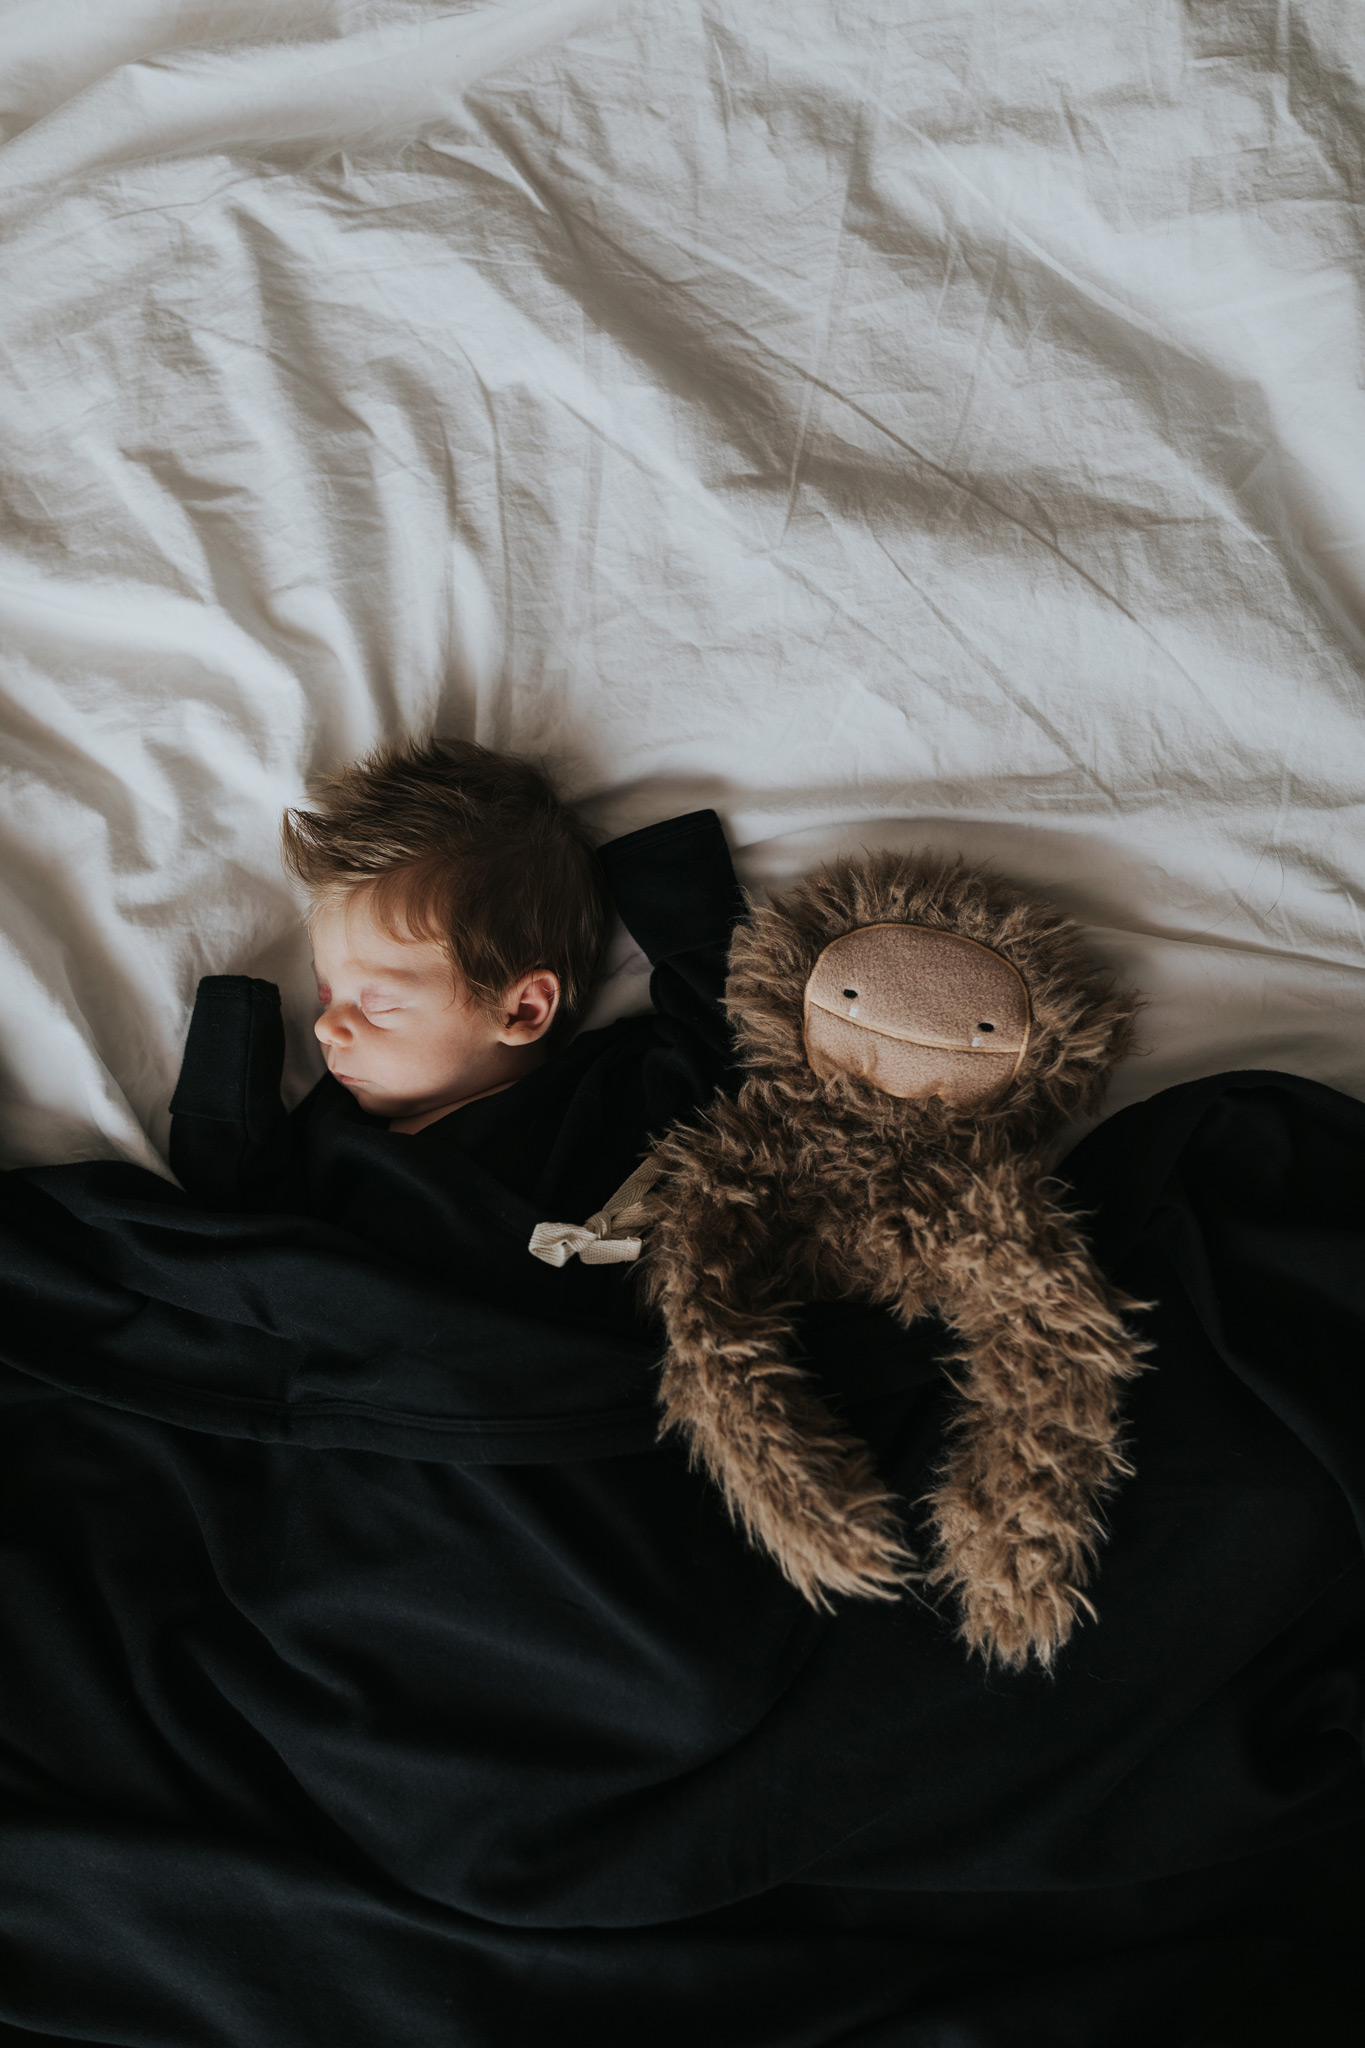 baby sleeping on bed cuddling stuffed animal